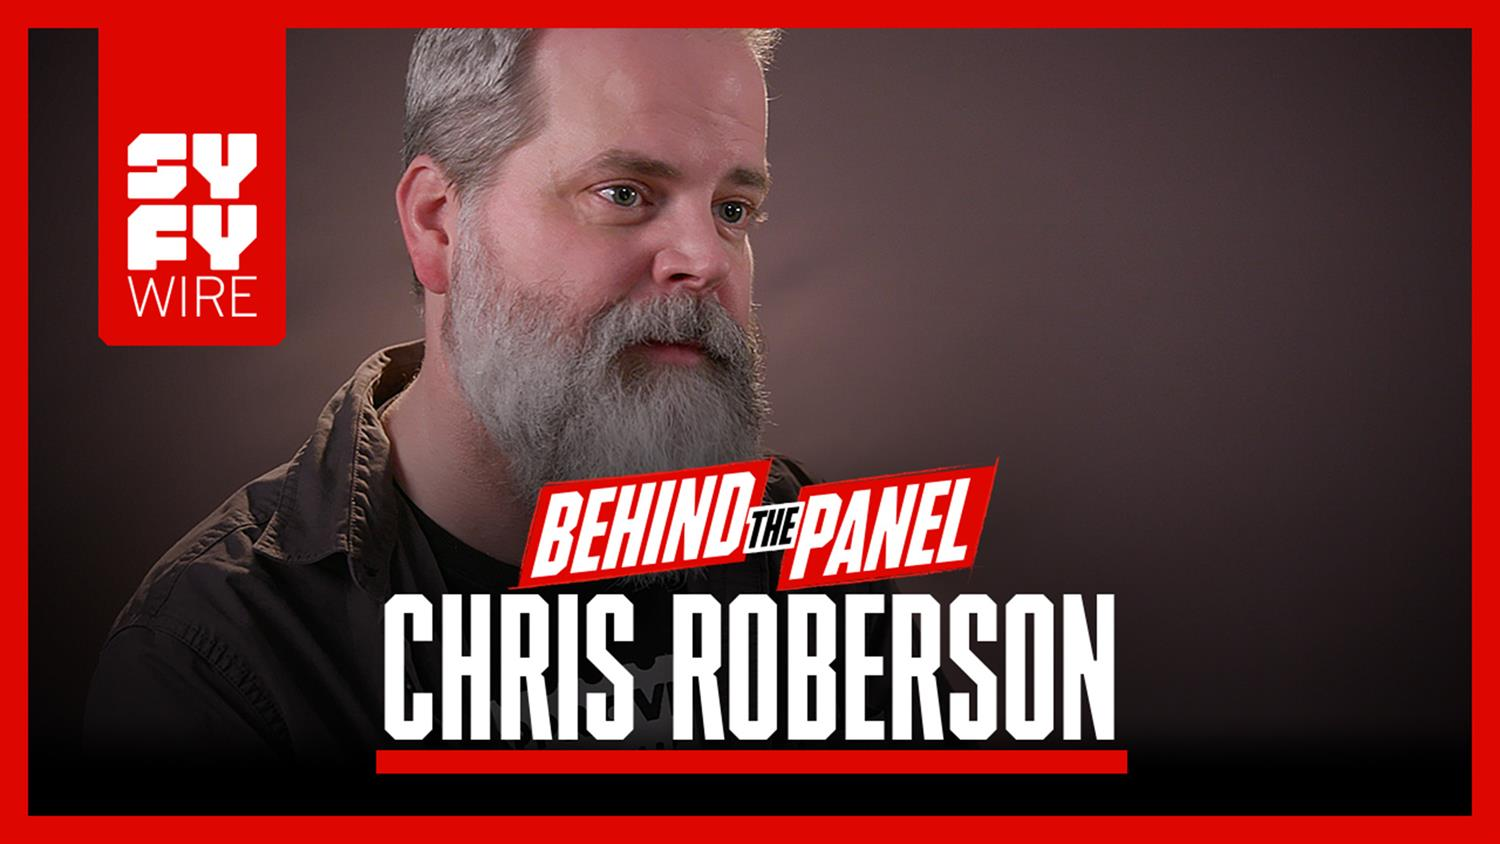 iZombie Creator Chris Roberson On The TV Show, Alternate Histories & More (Behind the Panel)